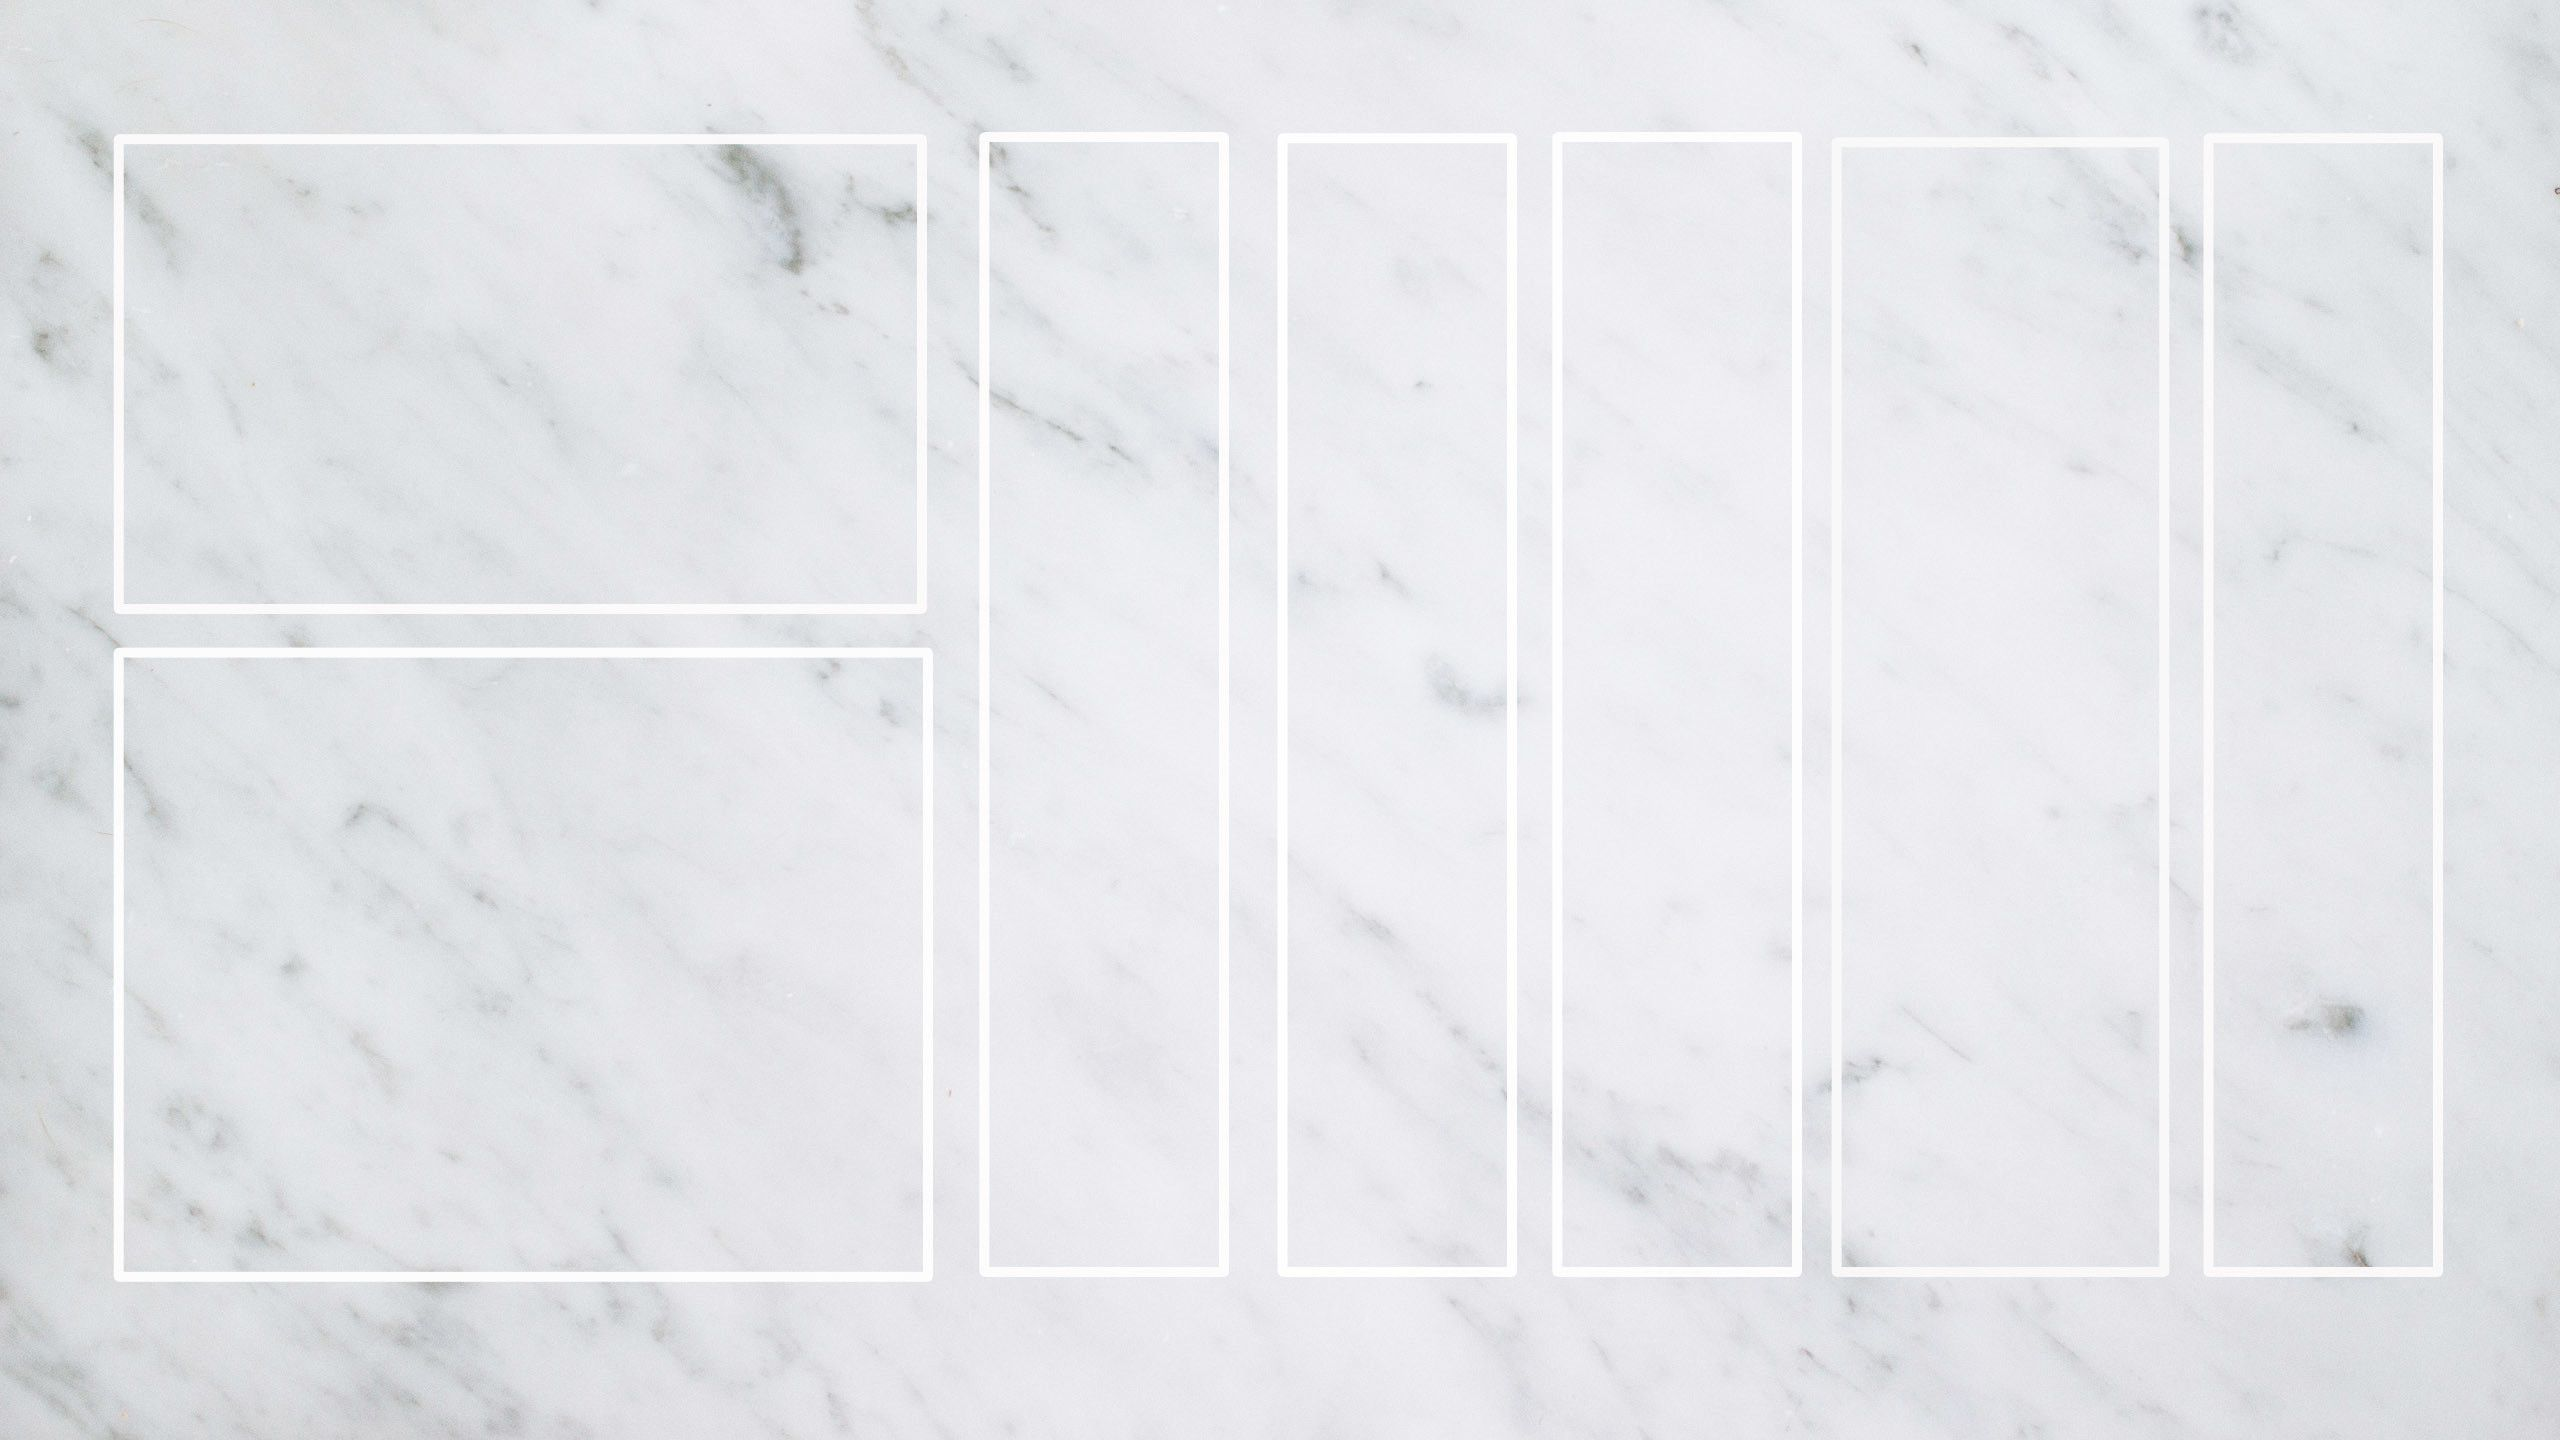 1040x1536 Images Of White Marble Iphone Wallpaper